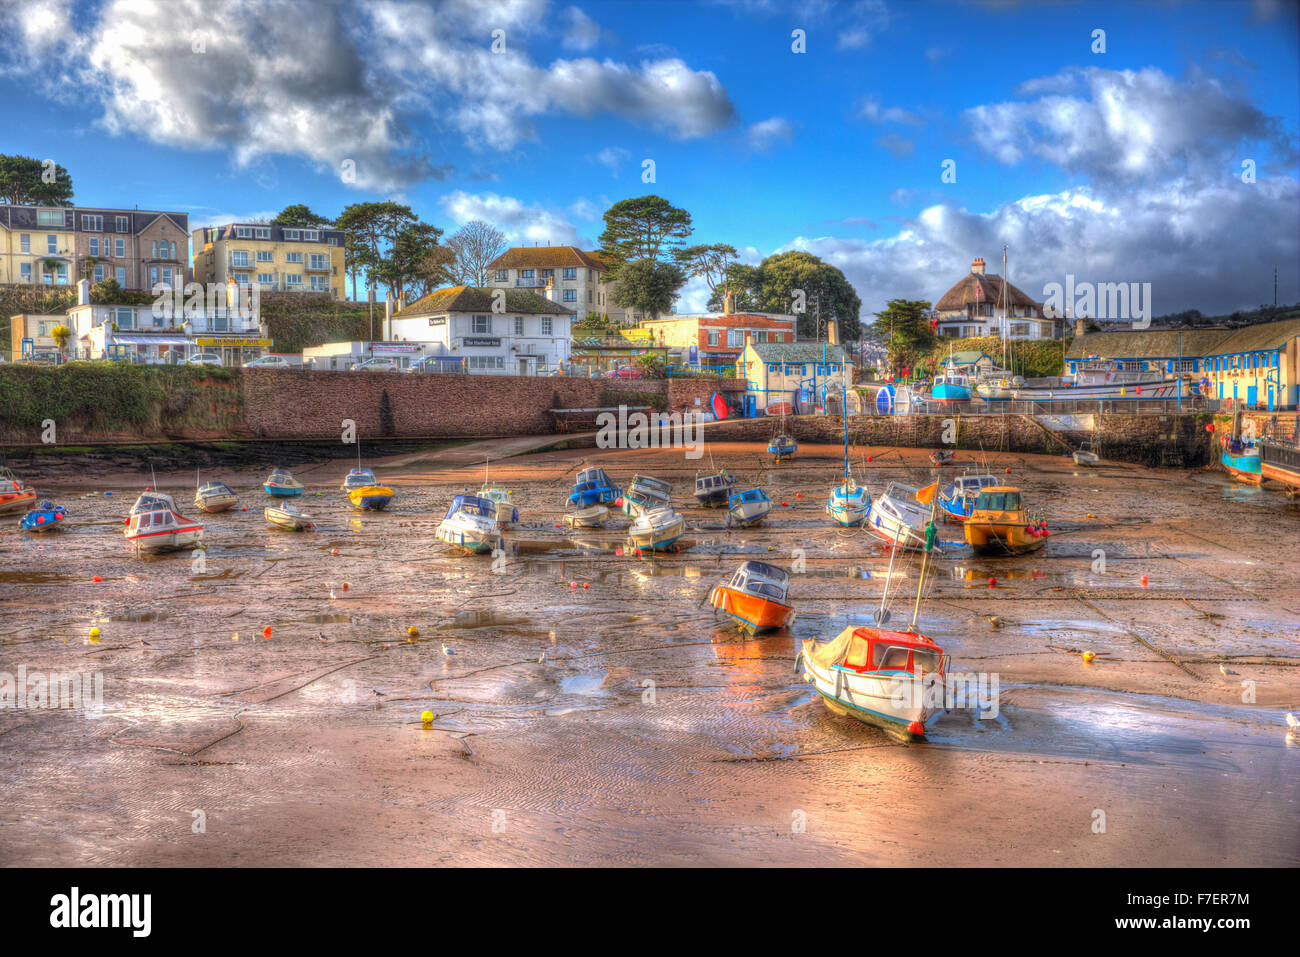 Paignton harbour Devon England uk in colourful HDR with boats at low tide and near Torquay - Stock Image